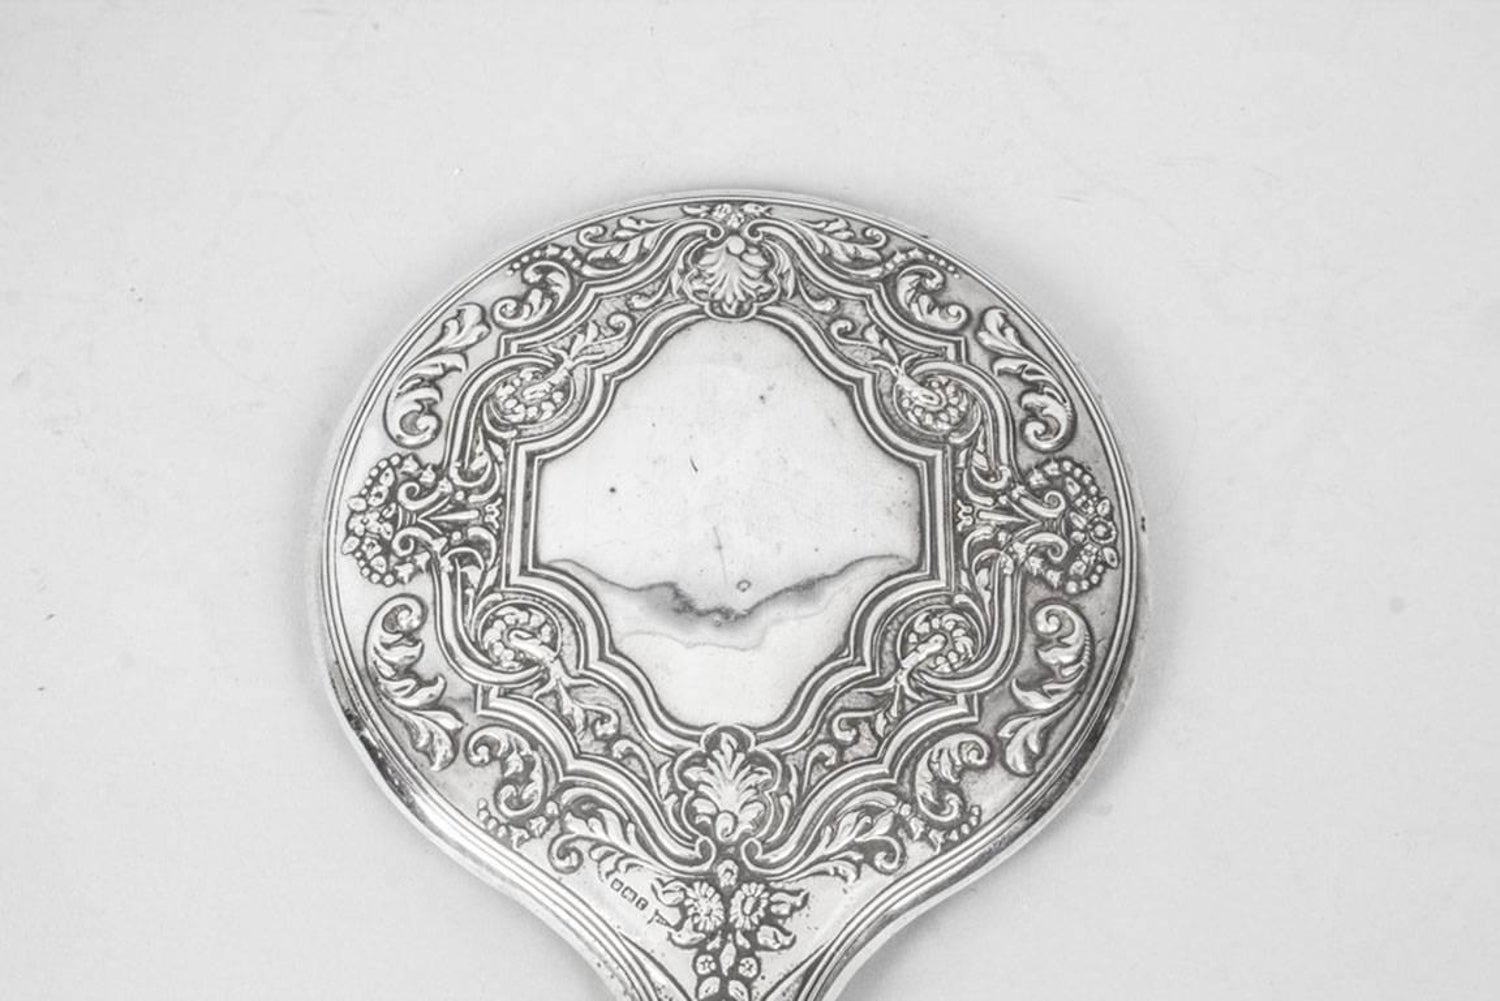 Antique Edwardian Sterling Silver and Embossed Hand Mirror 1909 by